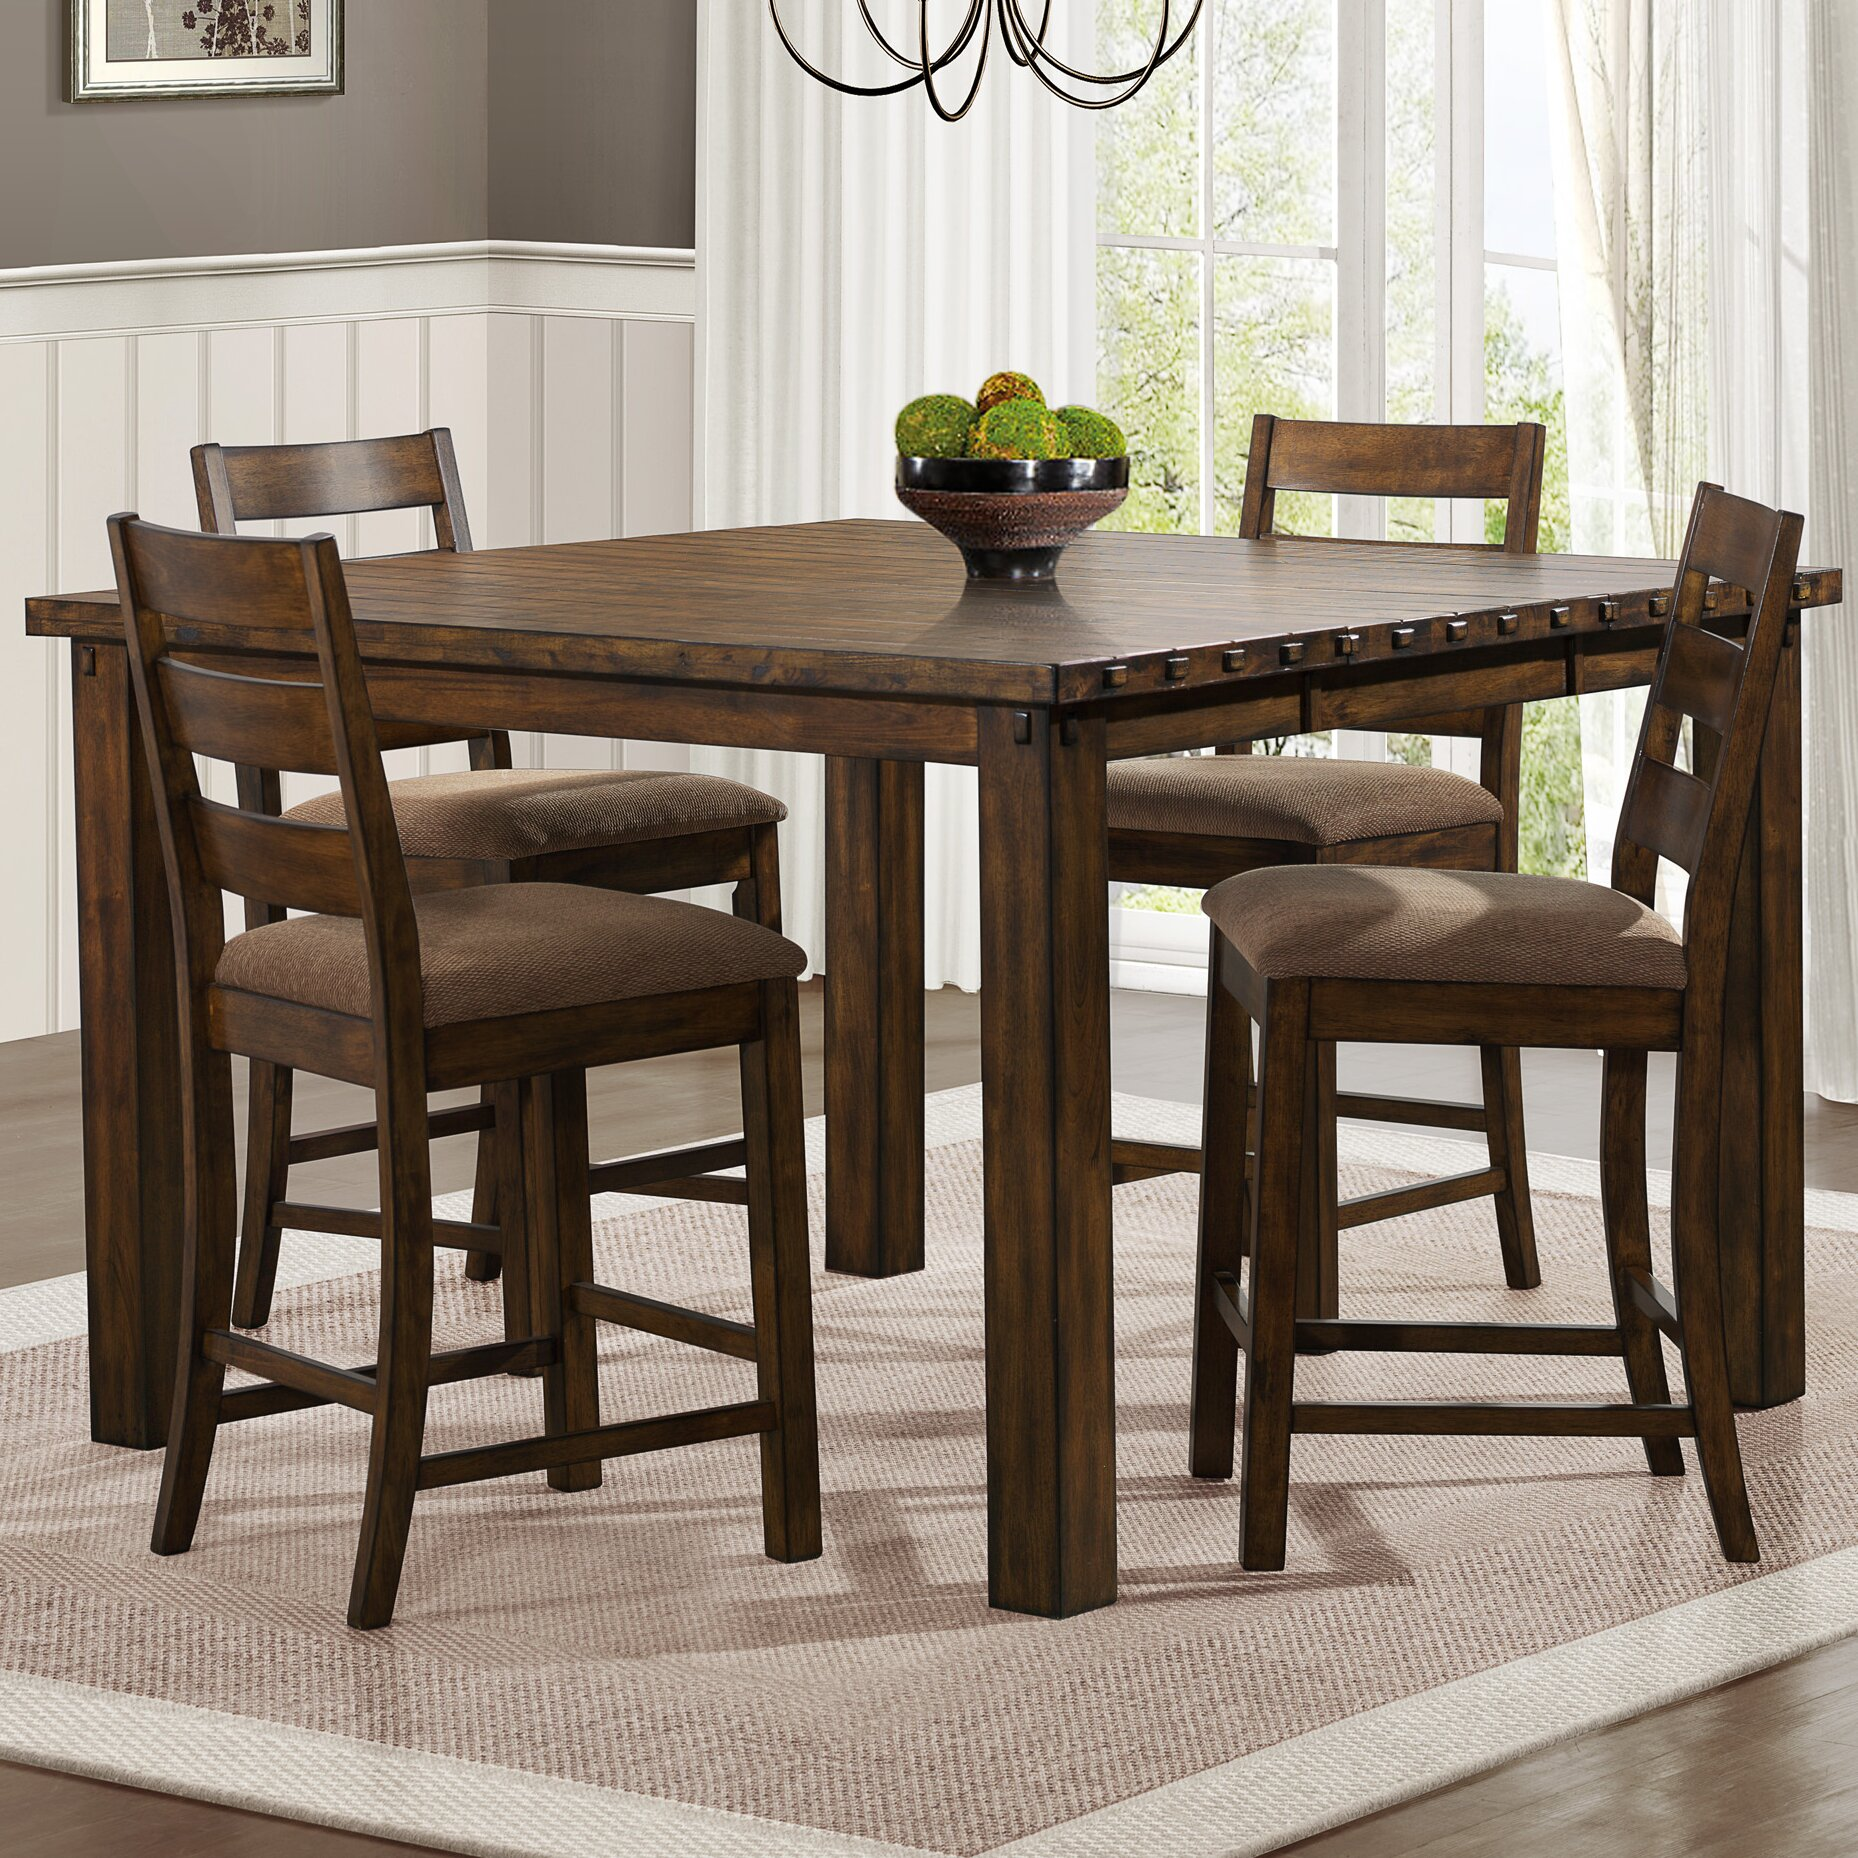 Woodhaven hill ronan counter height extendable dining for Counter height extendable dining table